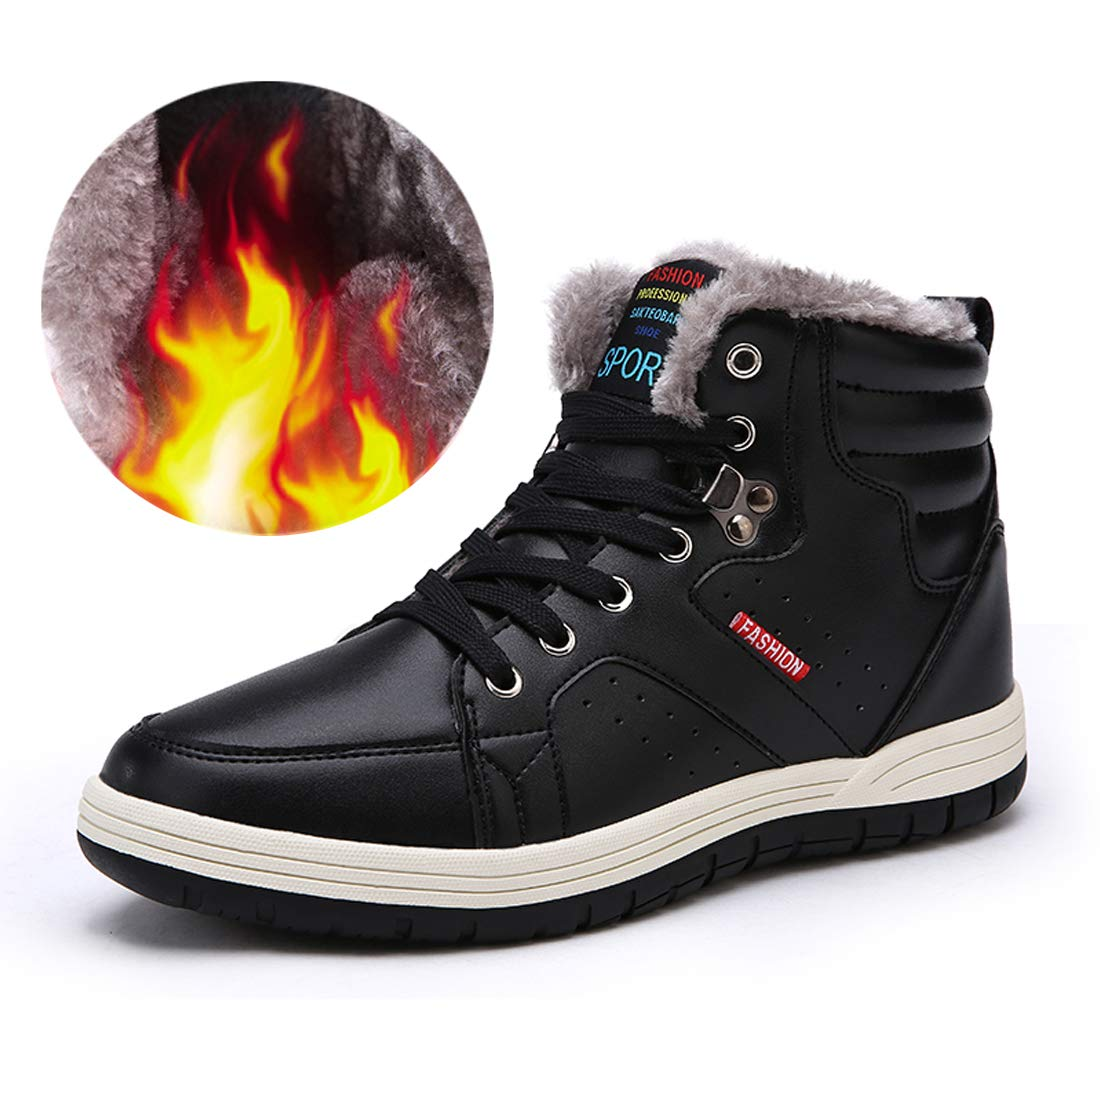 761c10c12e14 1-FASHION DESIGN Fashion sonw sneaker boots features waterproof PU leather  upper